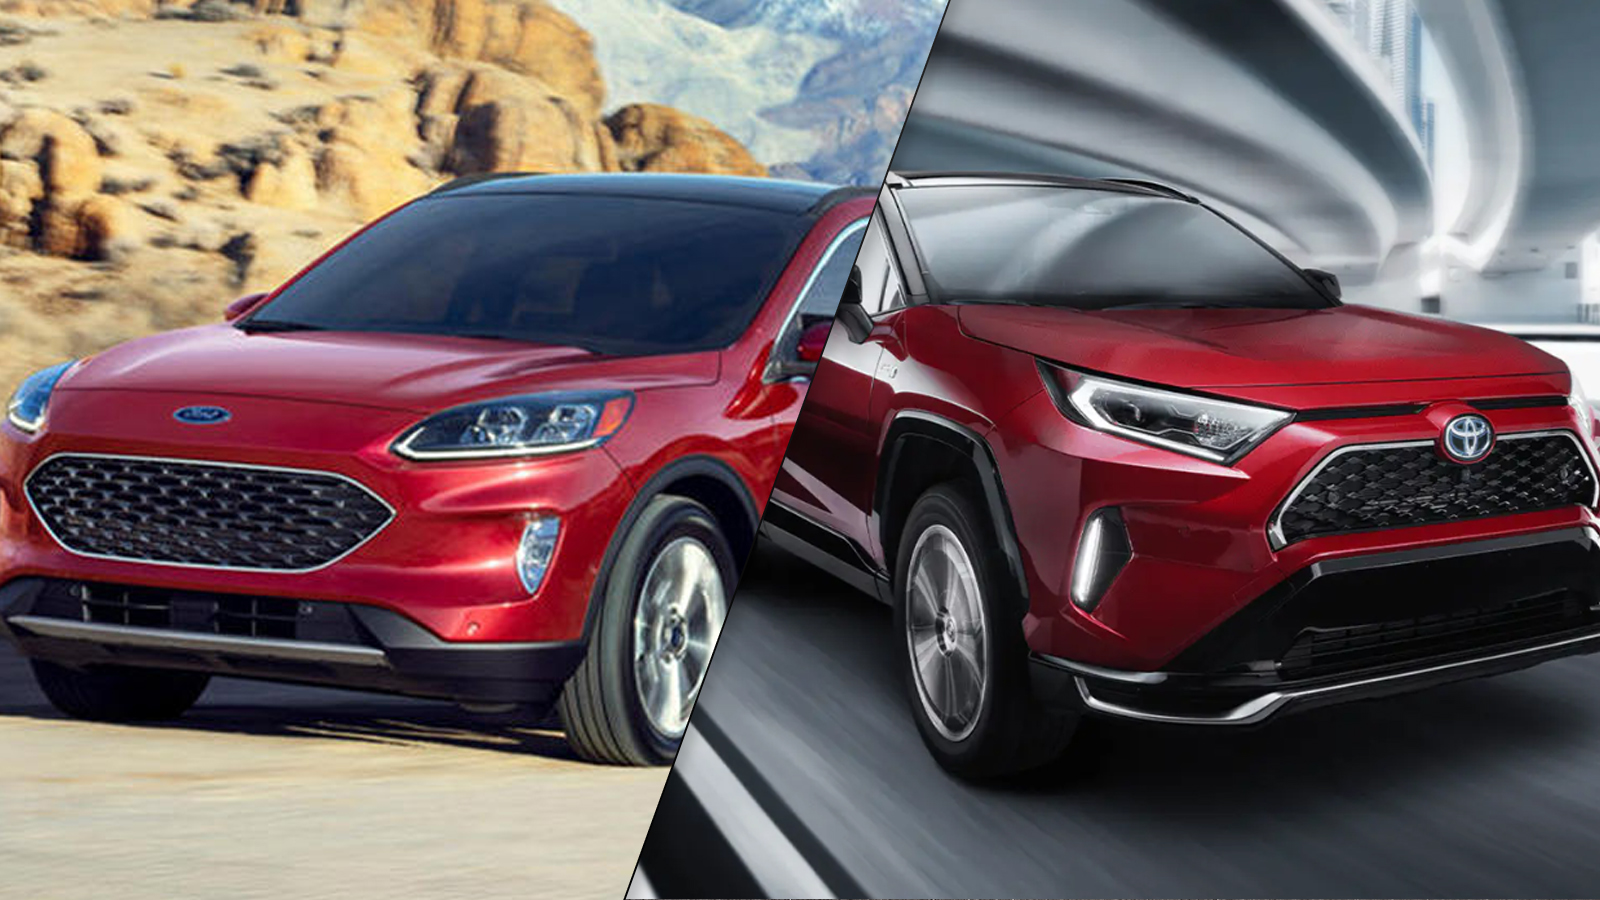 2021 Toyota RAV4 Prime vs 2020 Ford Escape PHEV